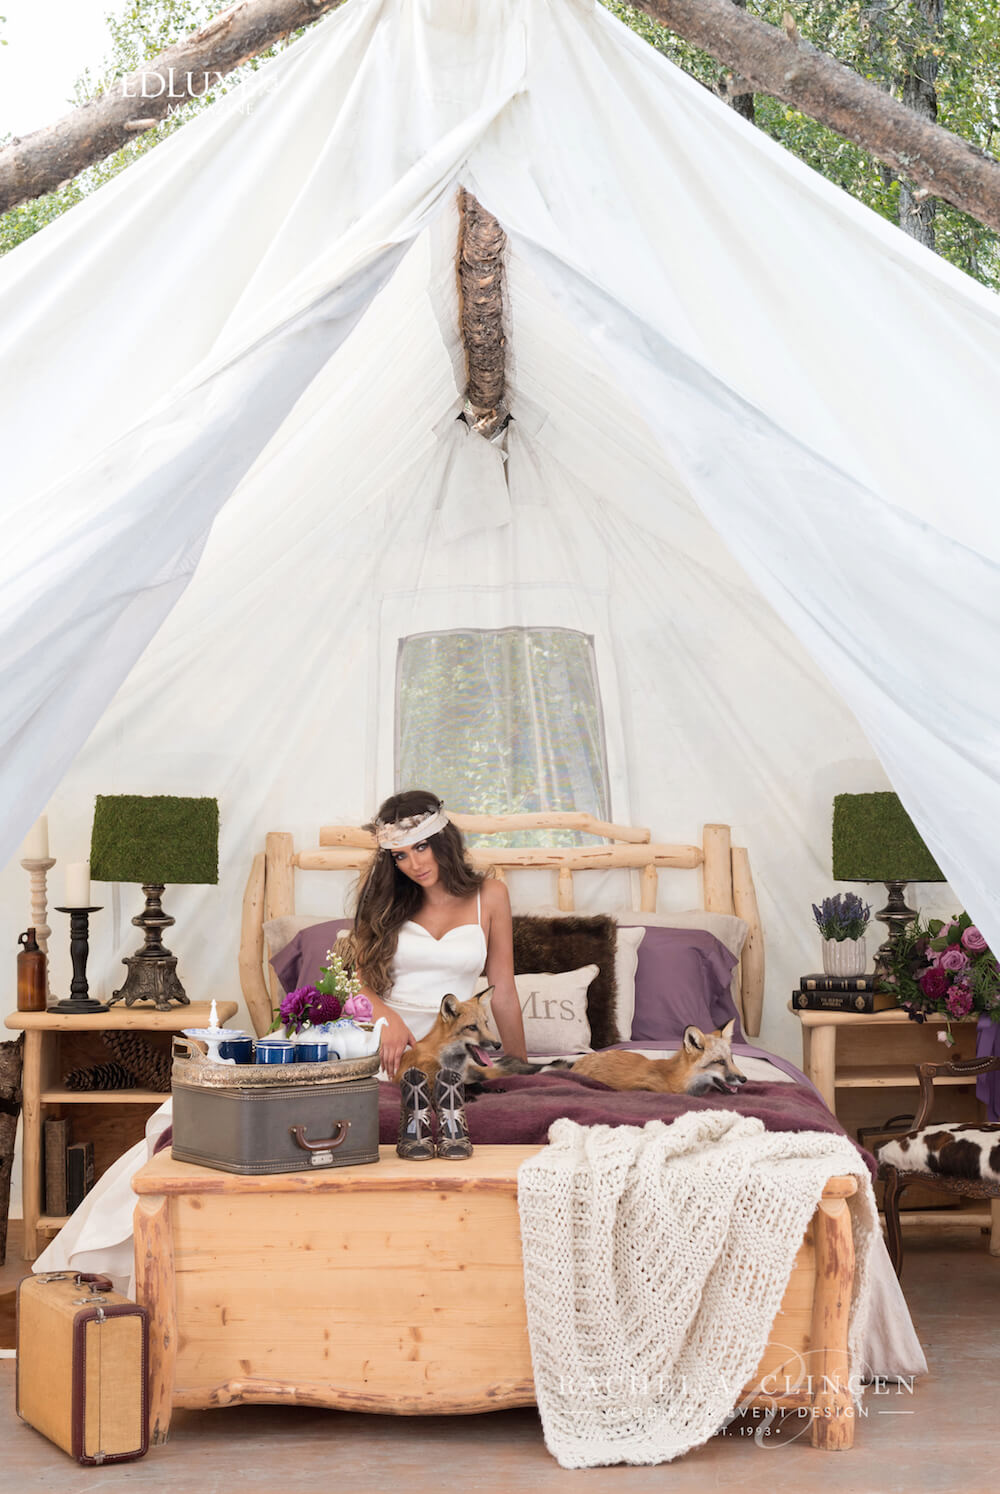 Rustic Glamping Wedding Inspiration  Rachel A Clingen